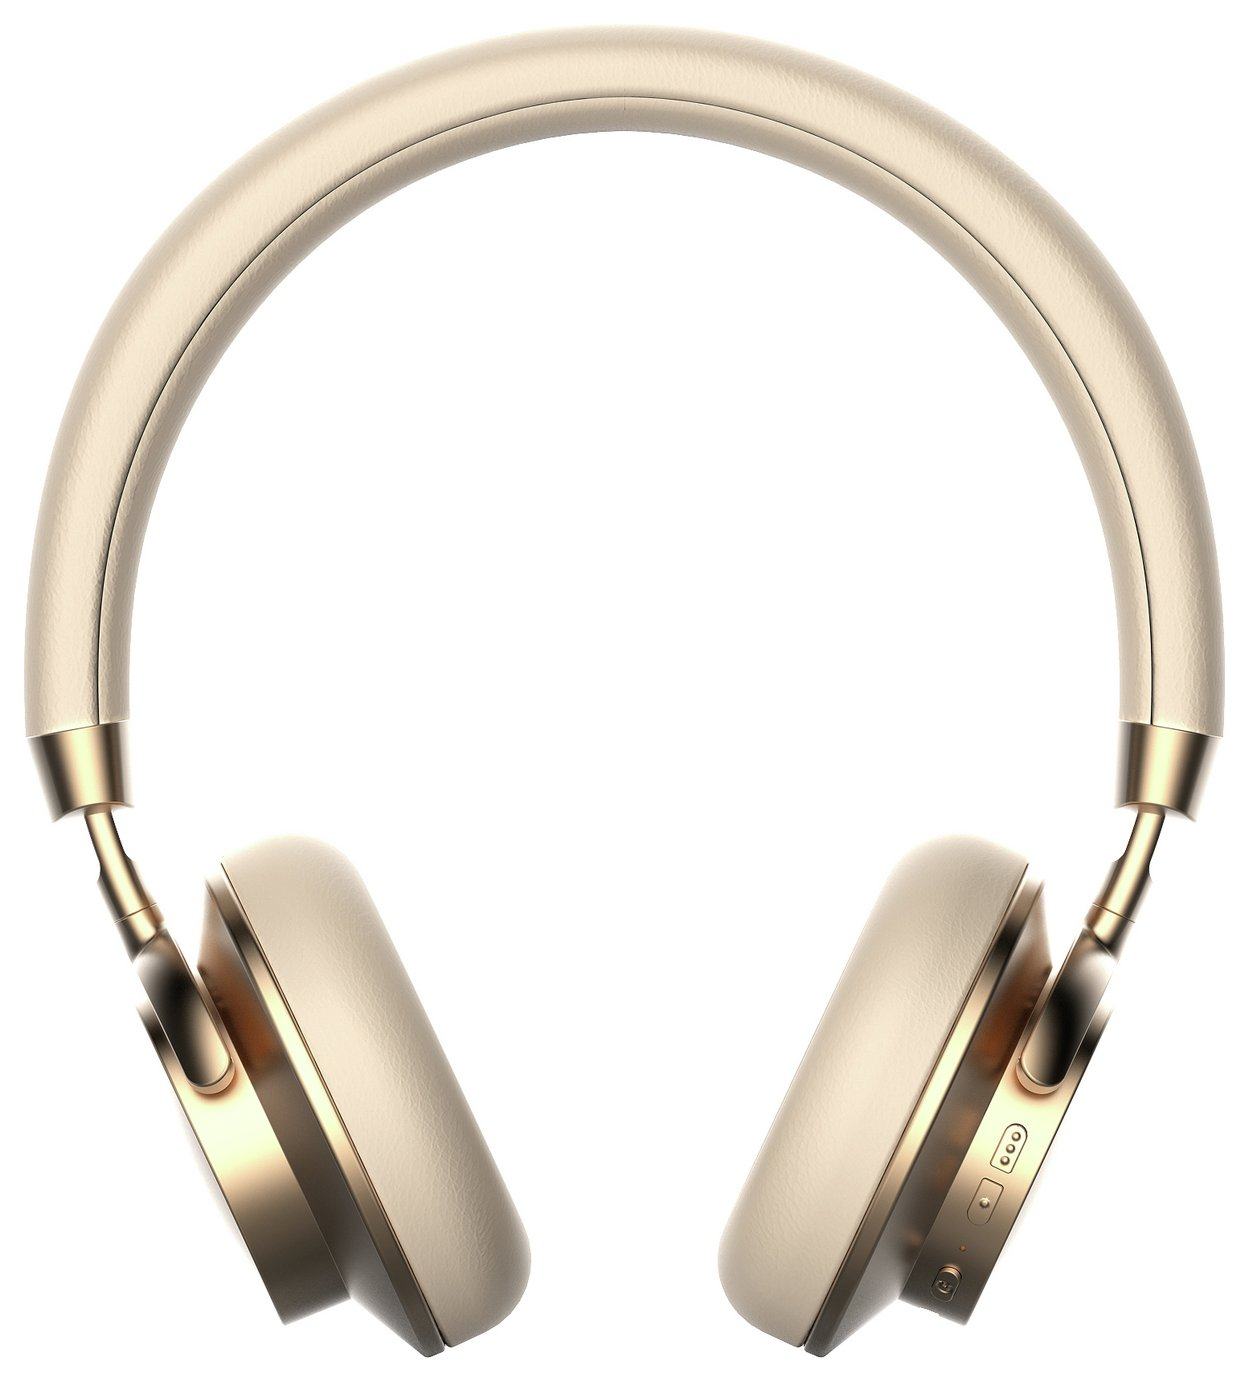 Image of DeFunc Wireless On-Ear Headphones - Gold